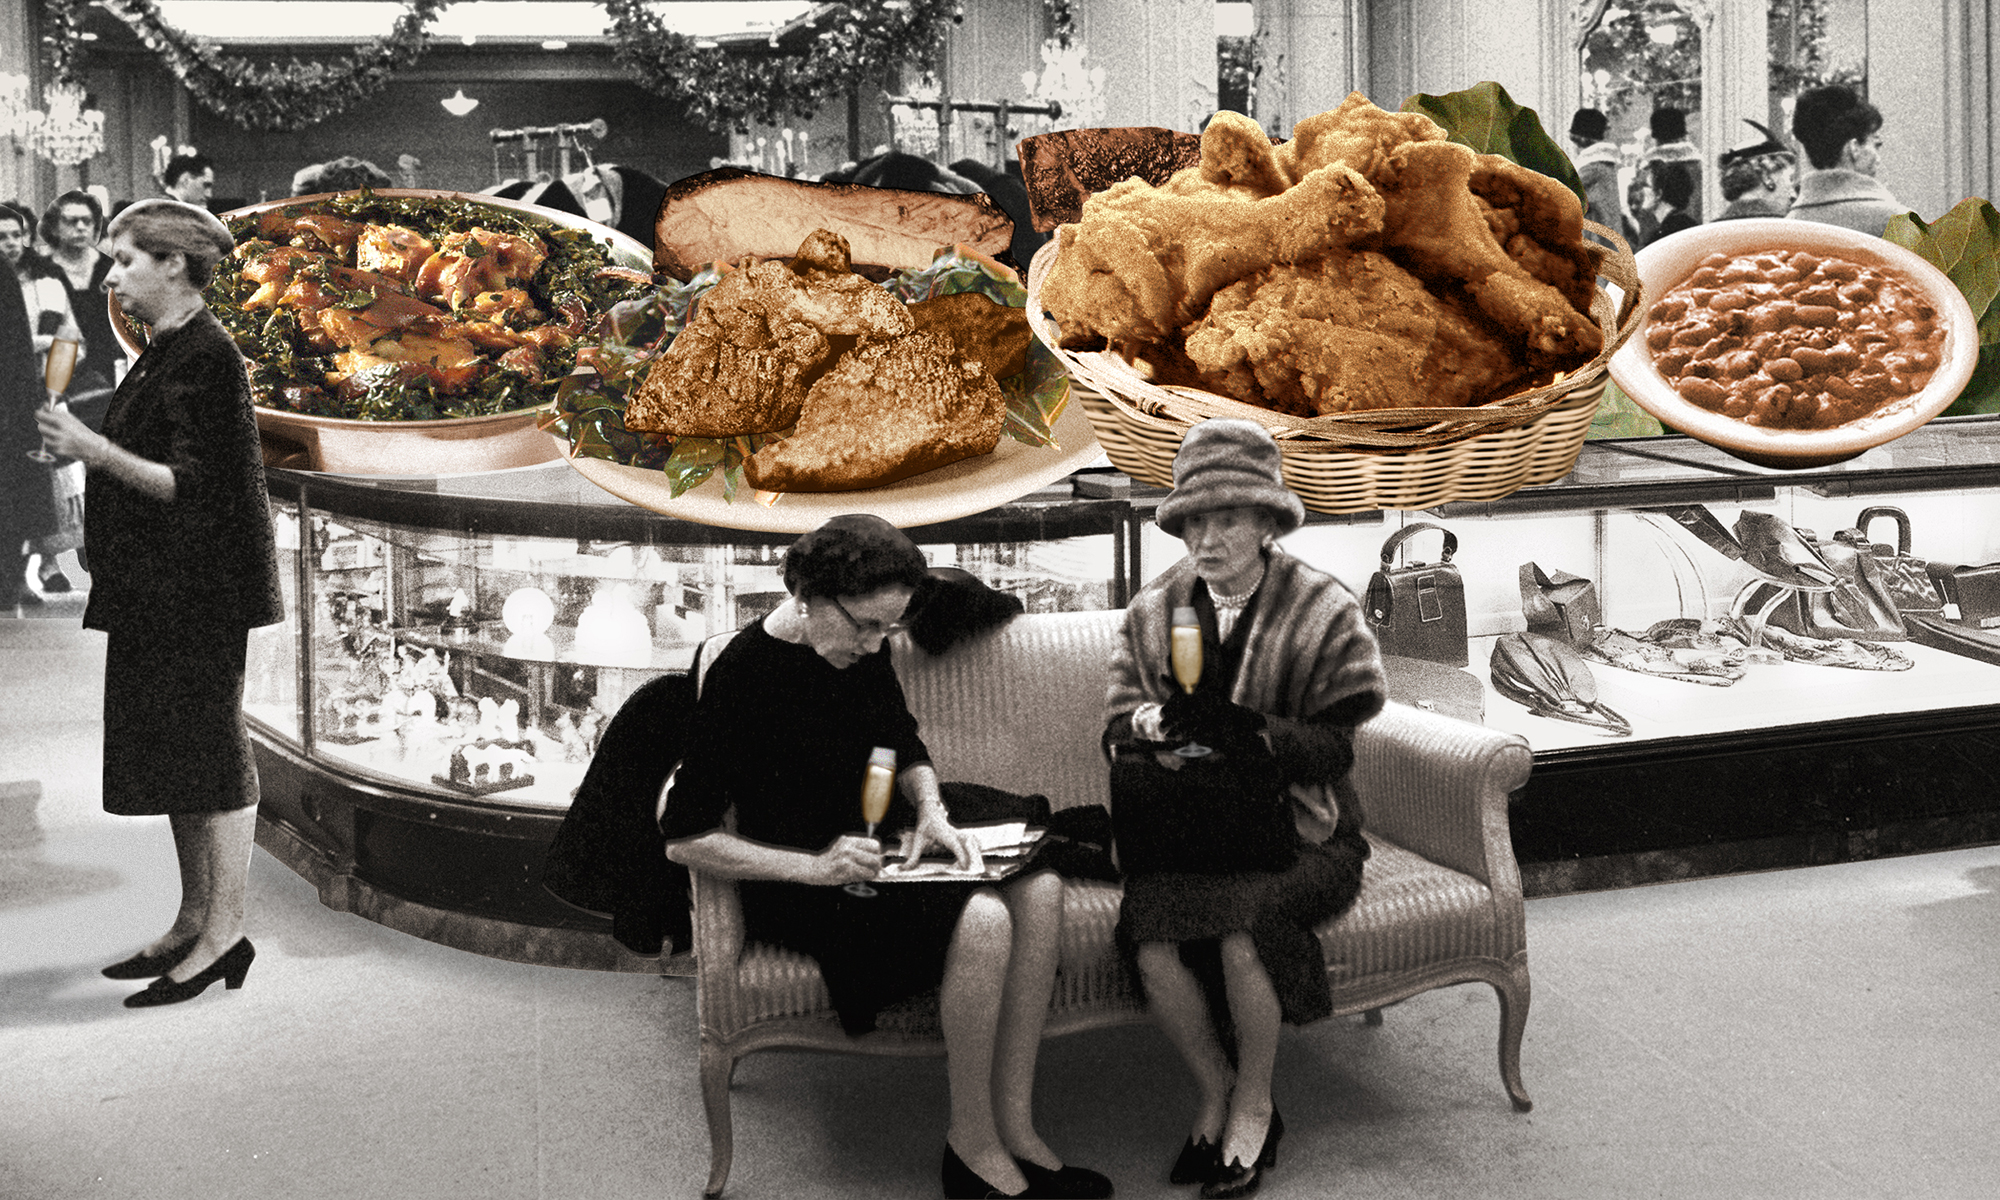 Collage image with women drinking champagne in a fancy department store, with images of soul food including fried chicken, black-eyed peas, and collard greens on the counter